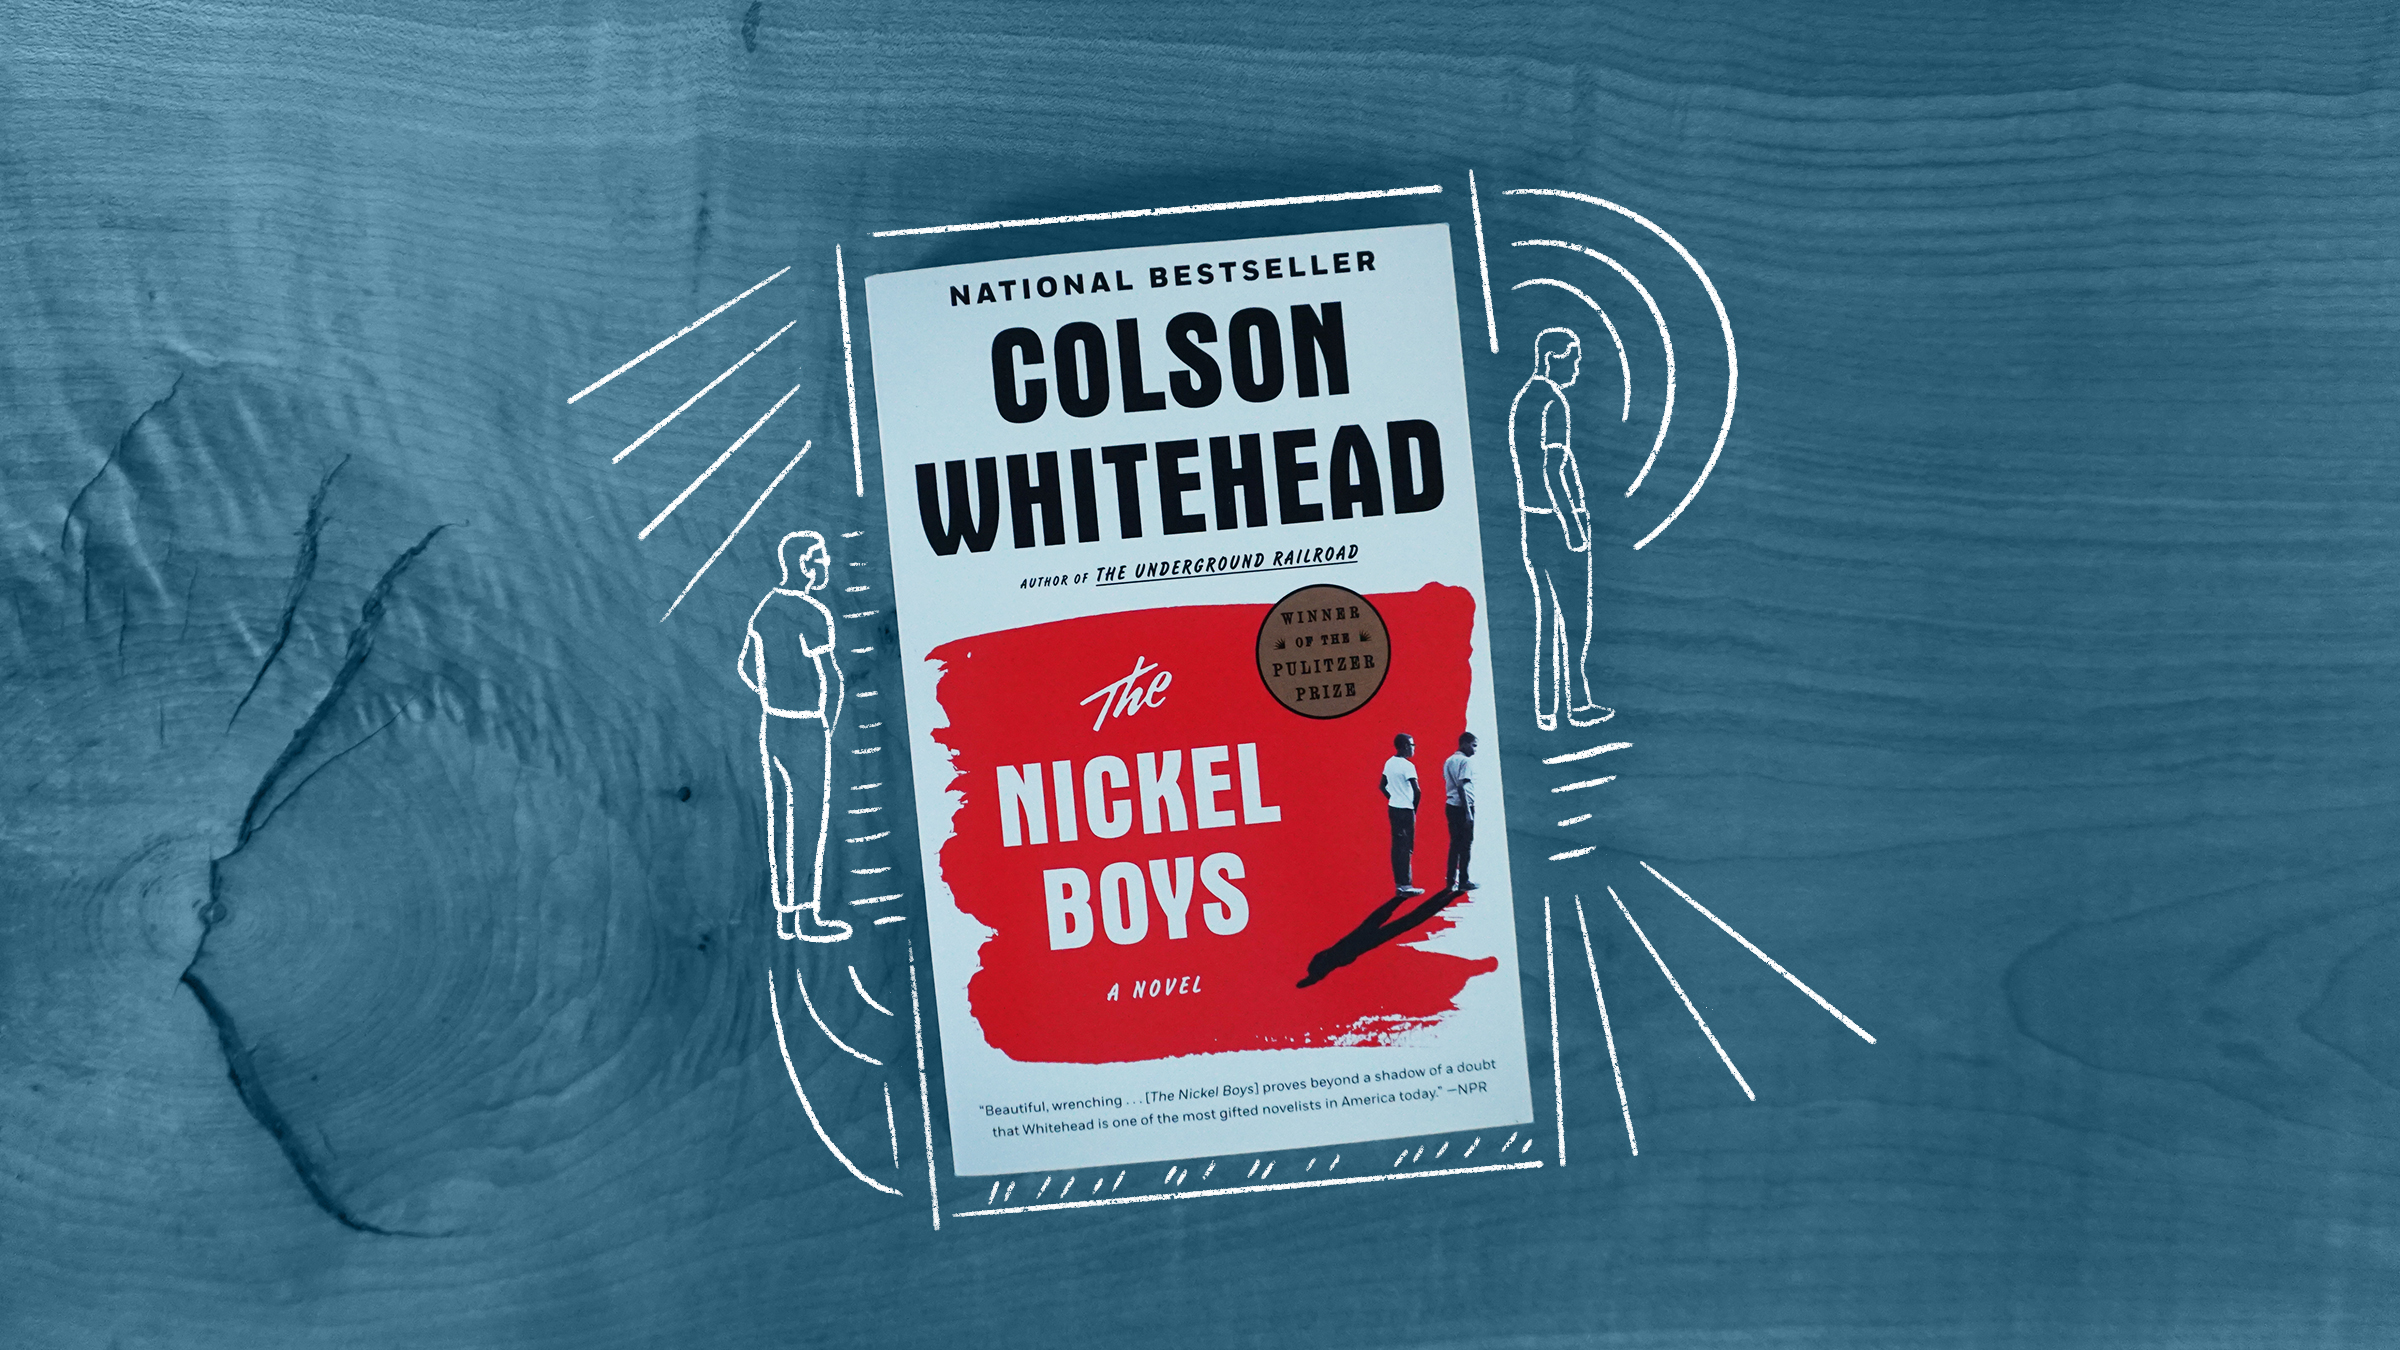 An illustration of the book cover of Nickel Boys by Colson Whitehead